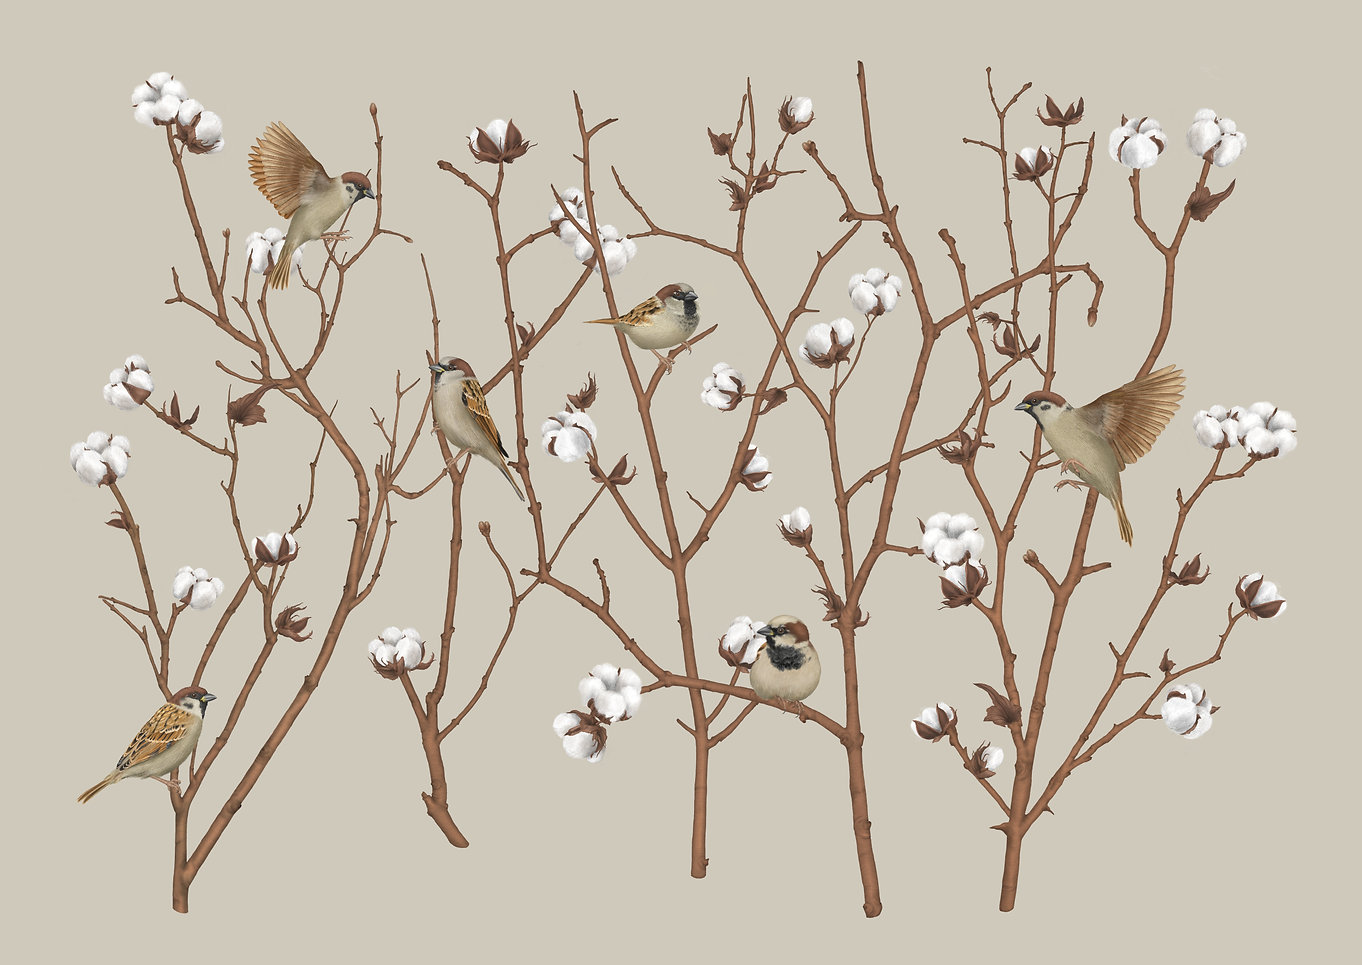 sparrows-on-cotton-plant-final-xs.jpg